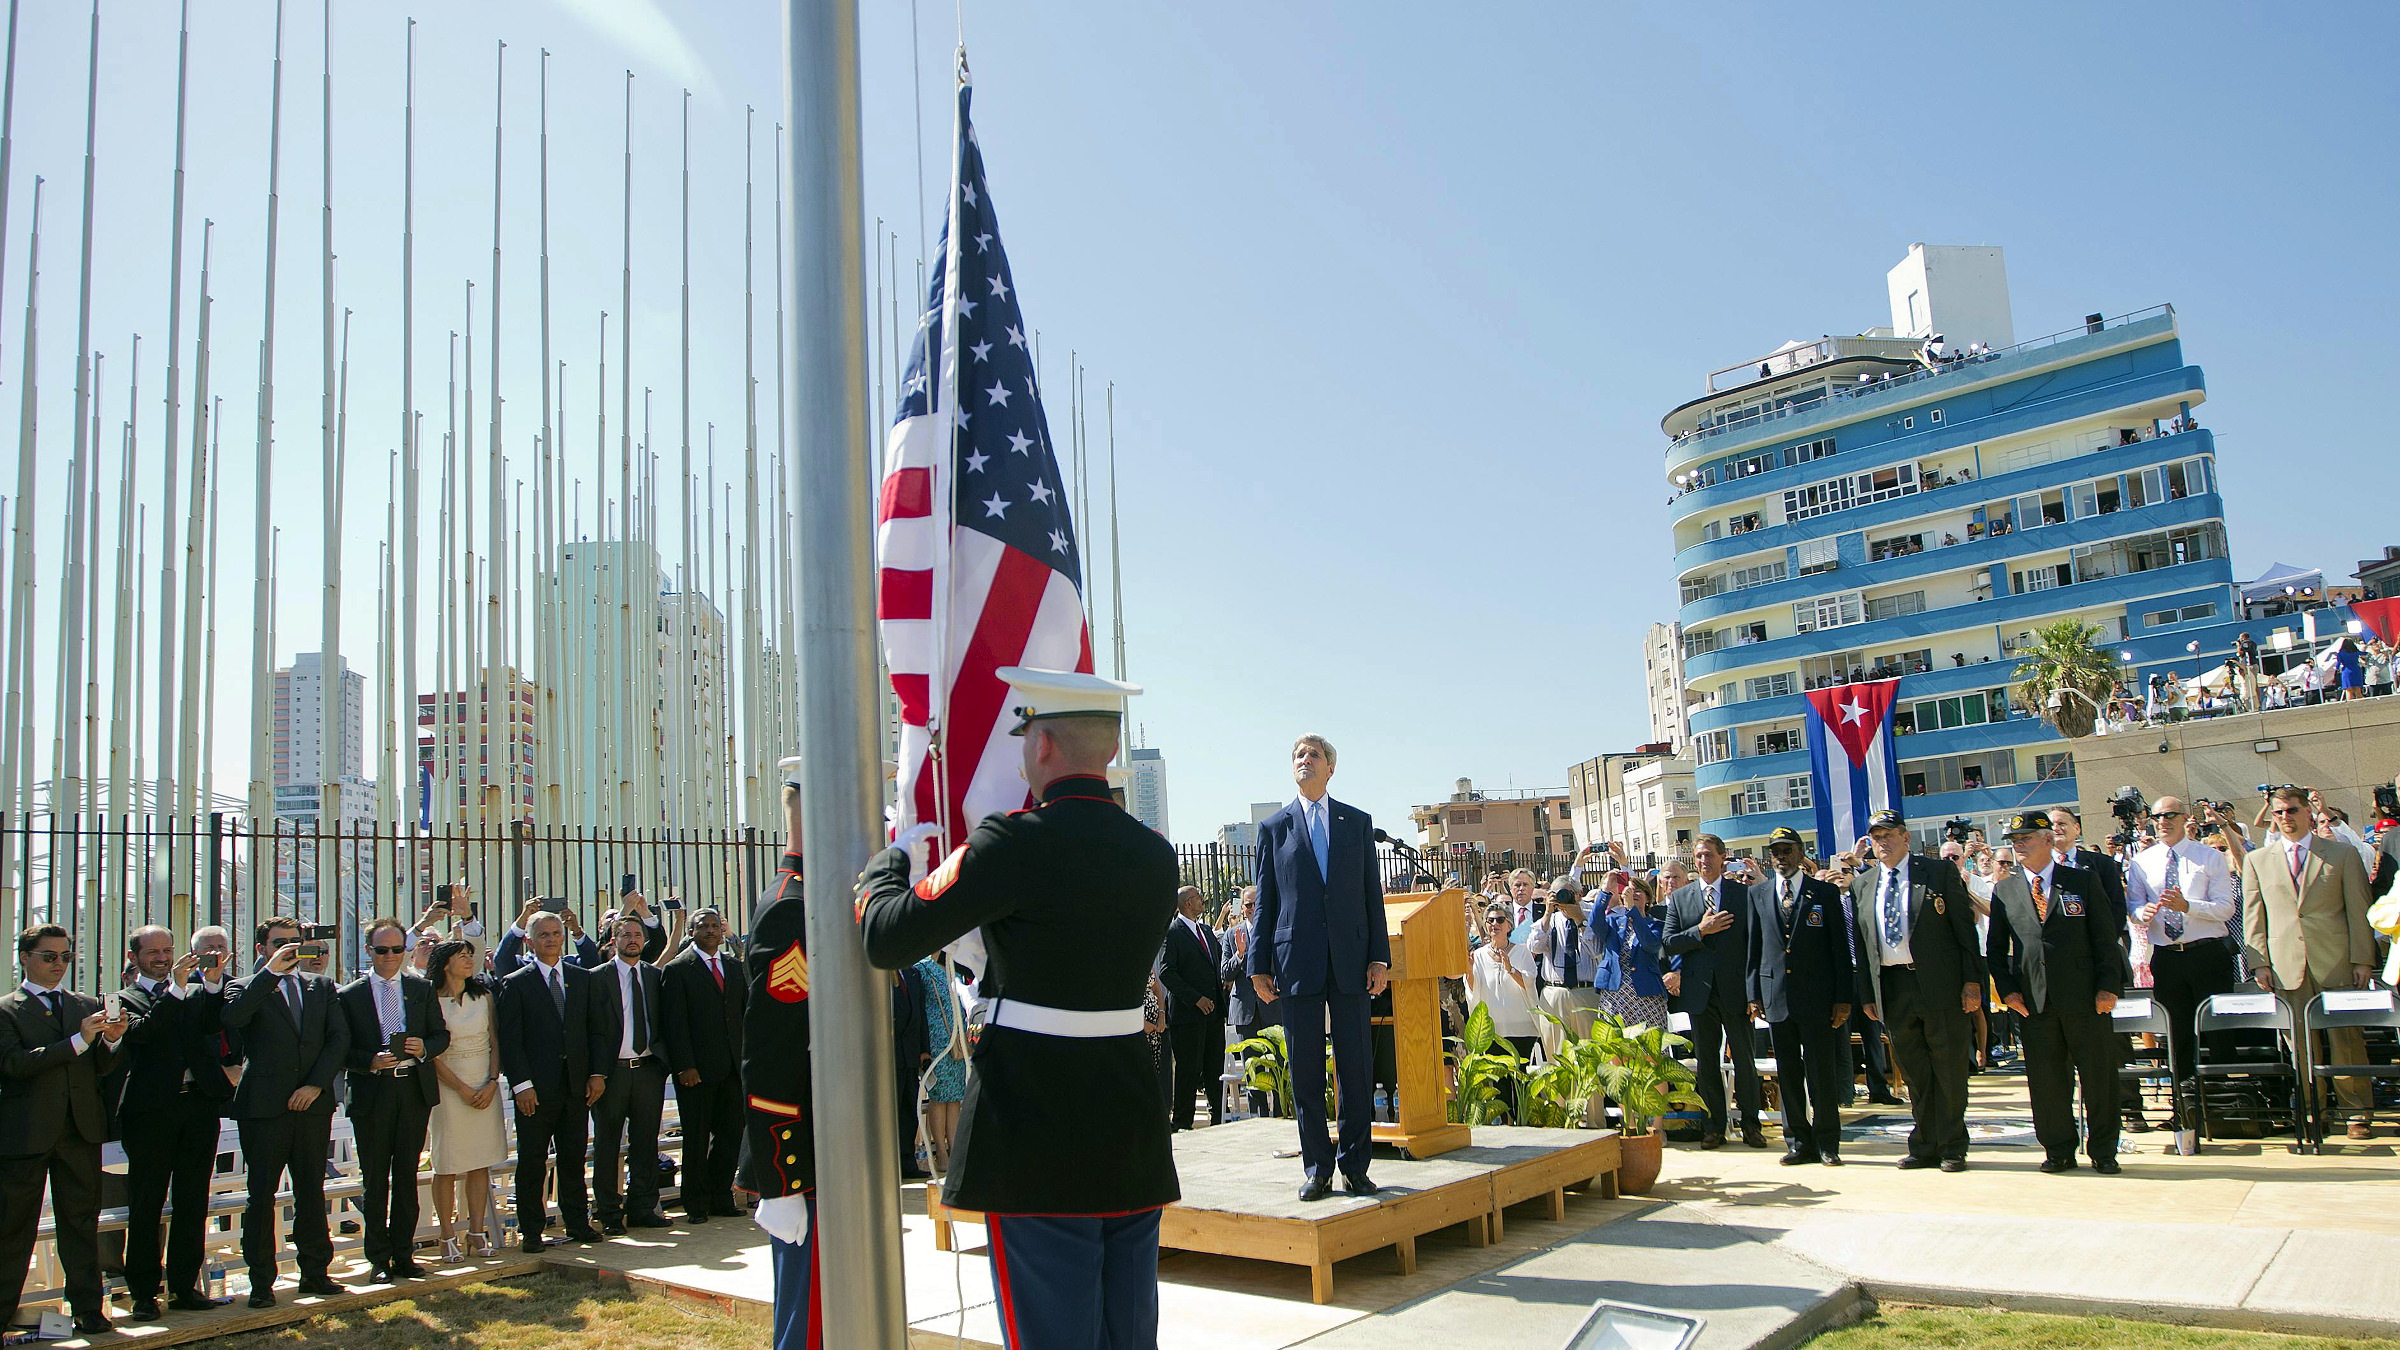 U.S. Secretary of State John Kerry (C) stands with other dignitaries as members of the U.S. Marines raise the U.S. flag over the newly reopened embassy in Havana, Cuba, August 14, 2015. Watched over by Kerry, U.S. Marines raised the American flag at the embassy in Cuba for the first time in 54 years on Friday, symbolically ushering in an era of renewed diplomatic relations between the two Cold War-era foes.